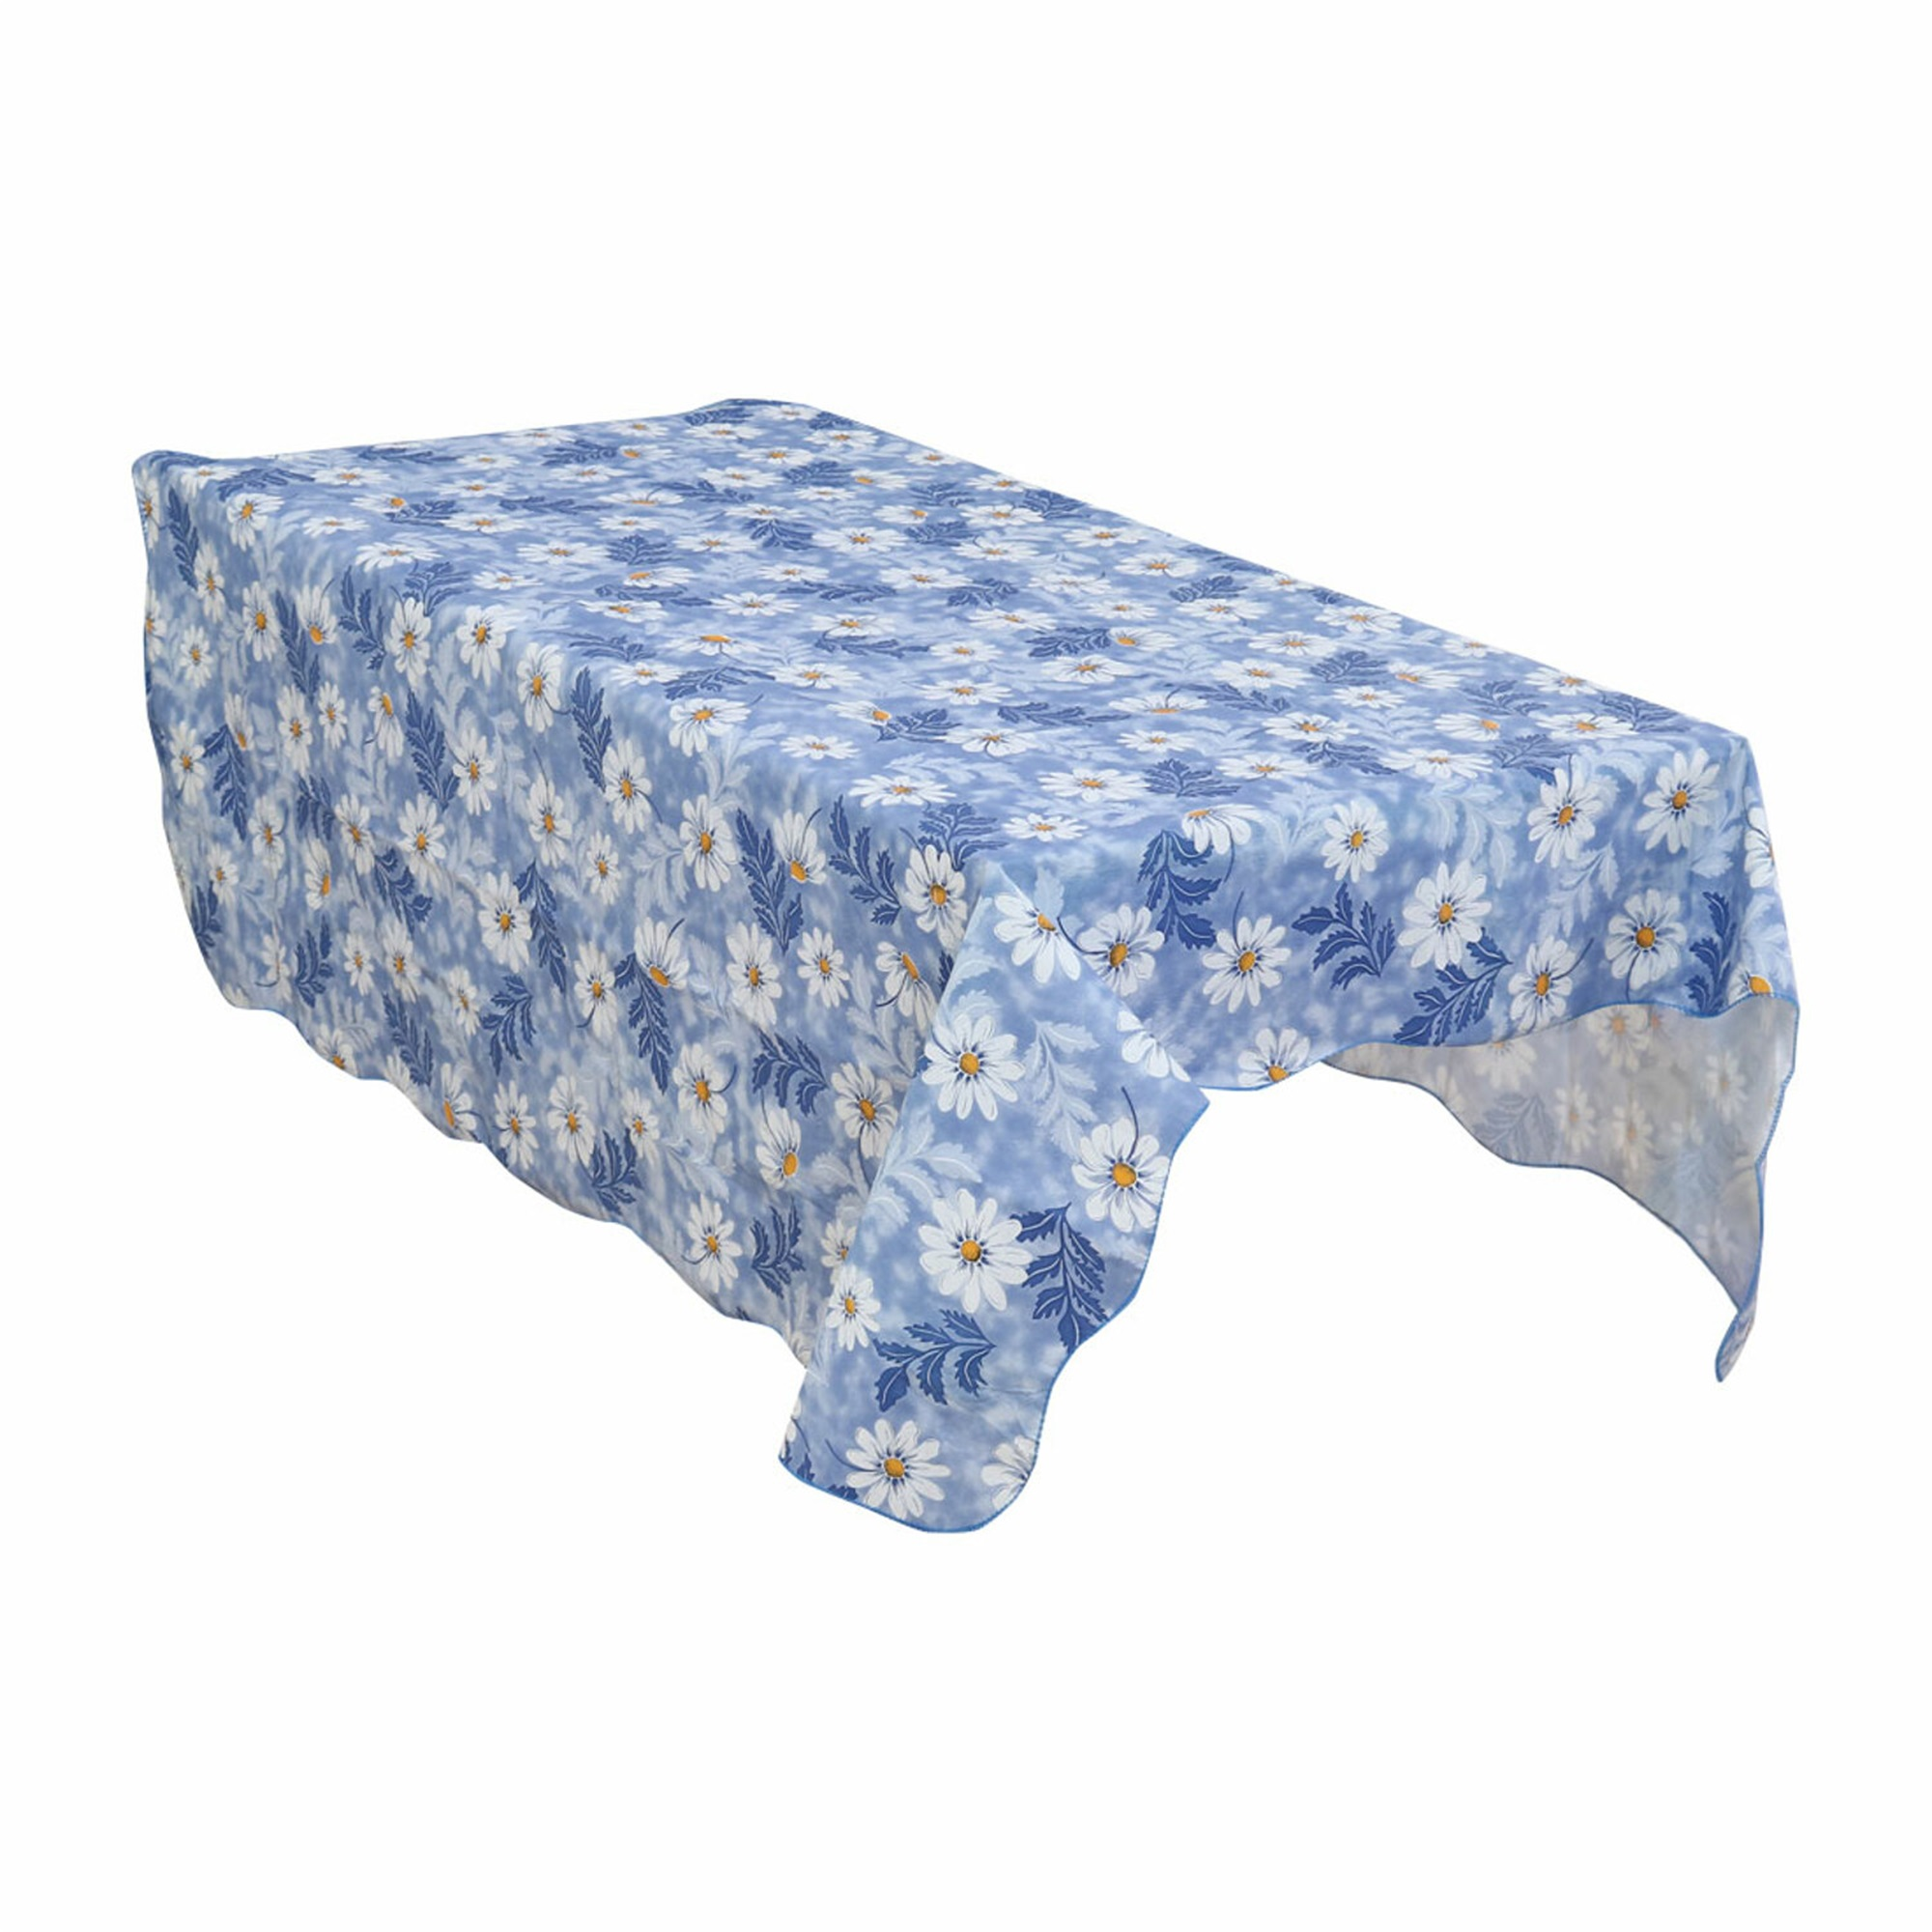 Home Picnic Square Daisy Pattern Water Resistant Oil-proof Tablecloth Table Cloth Cover Blue 35 x 35 Inch